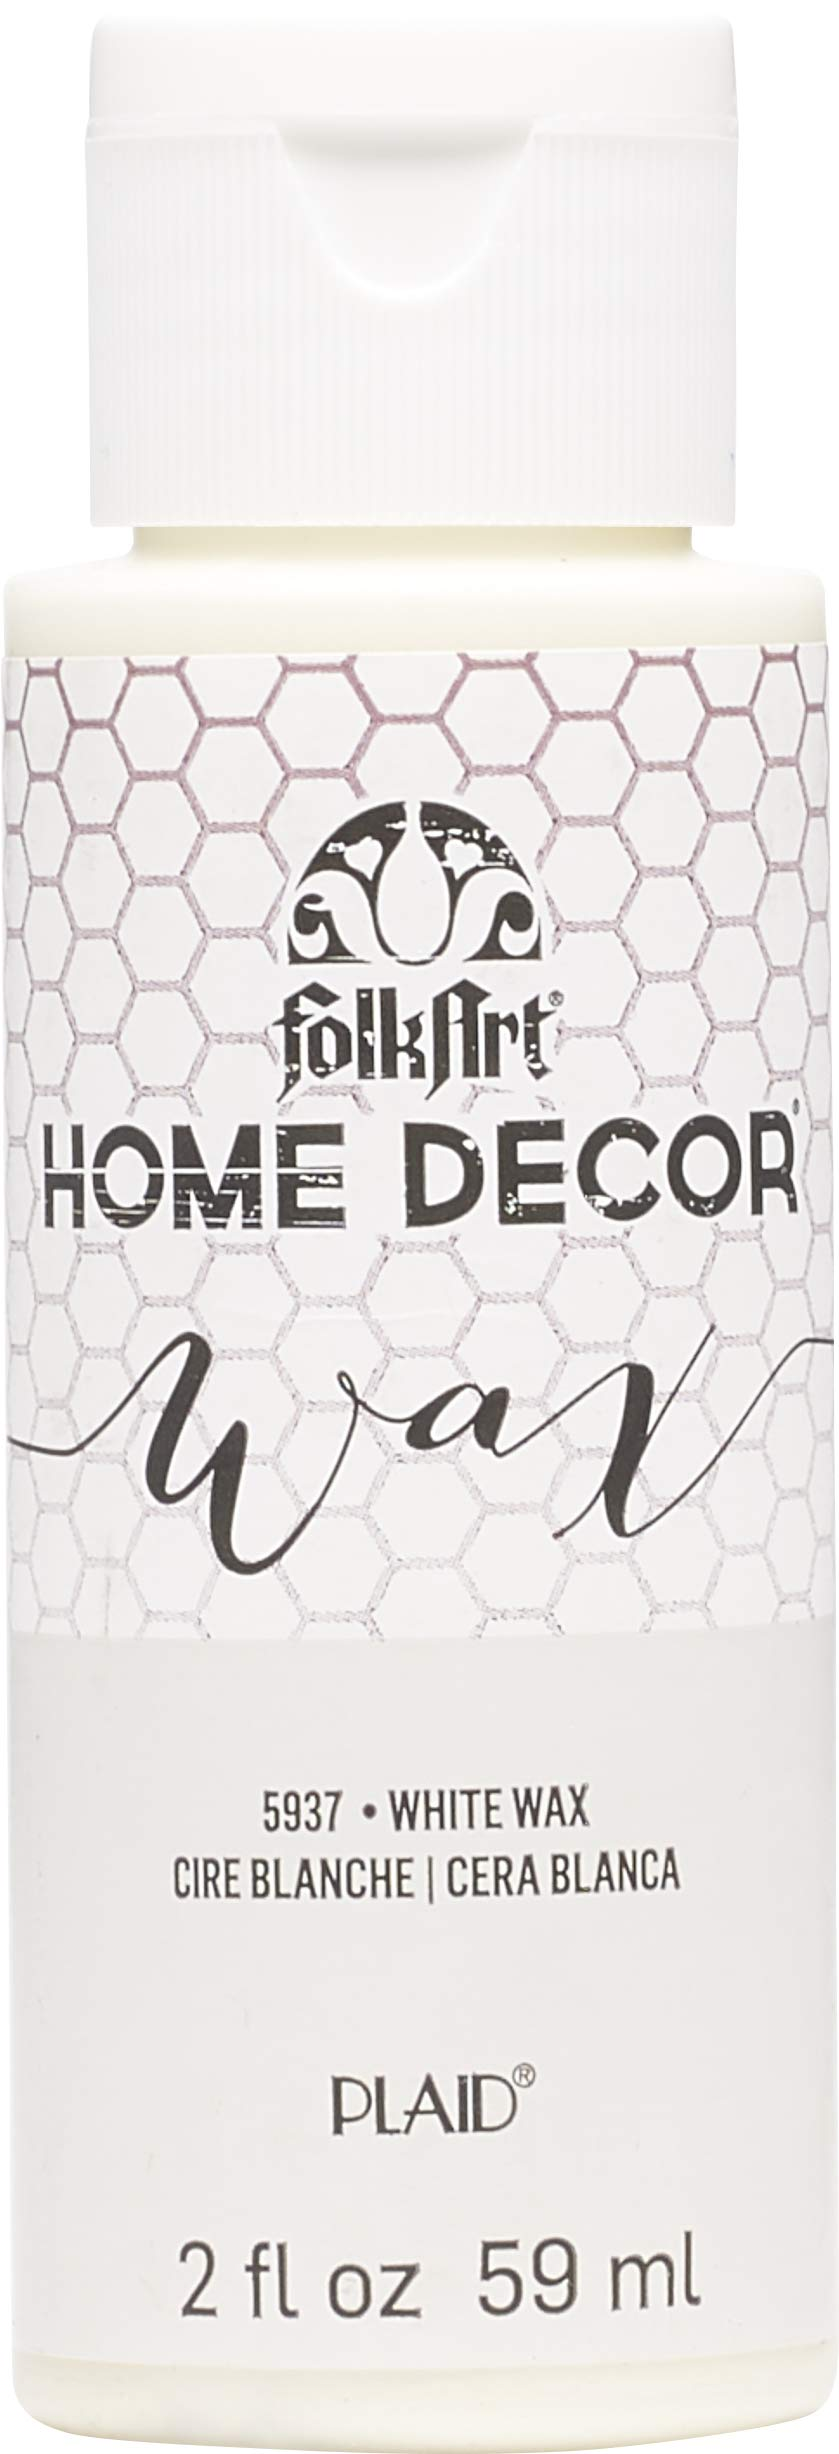 FolkArt 5937 Home Décor Chalk Furniture & Craft Paint in Assorted Colors, 2 Oz, White